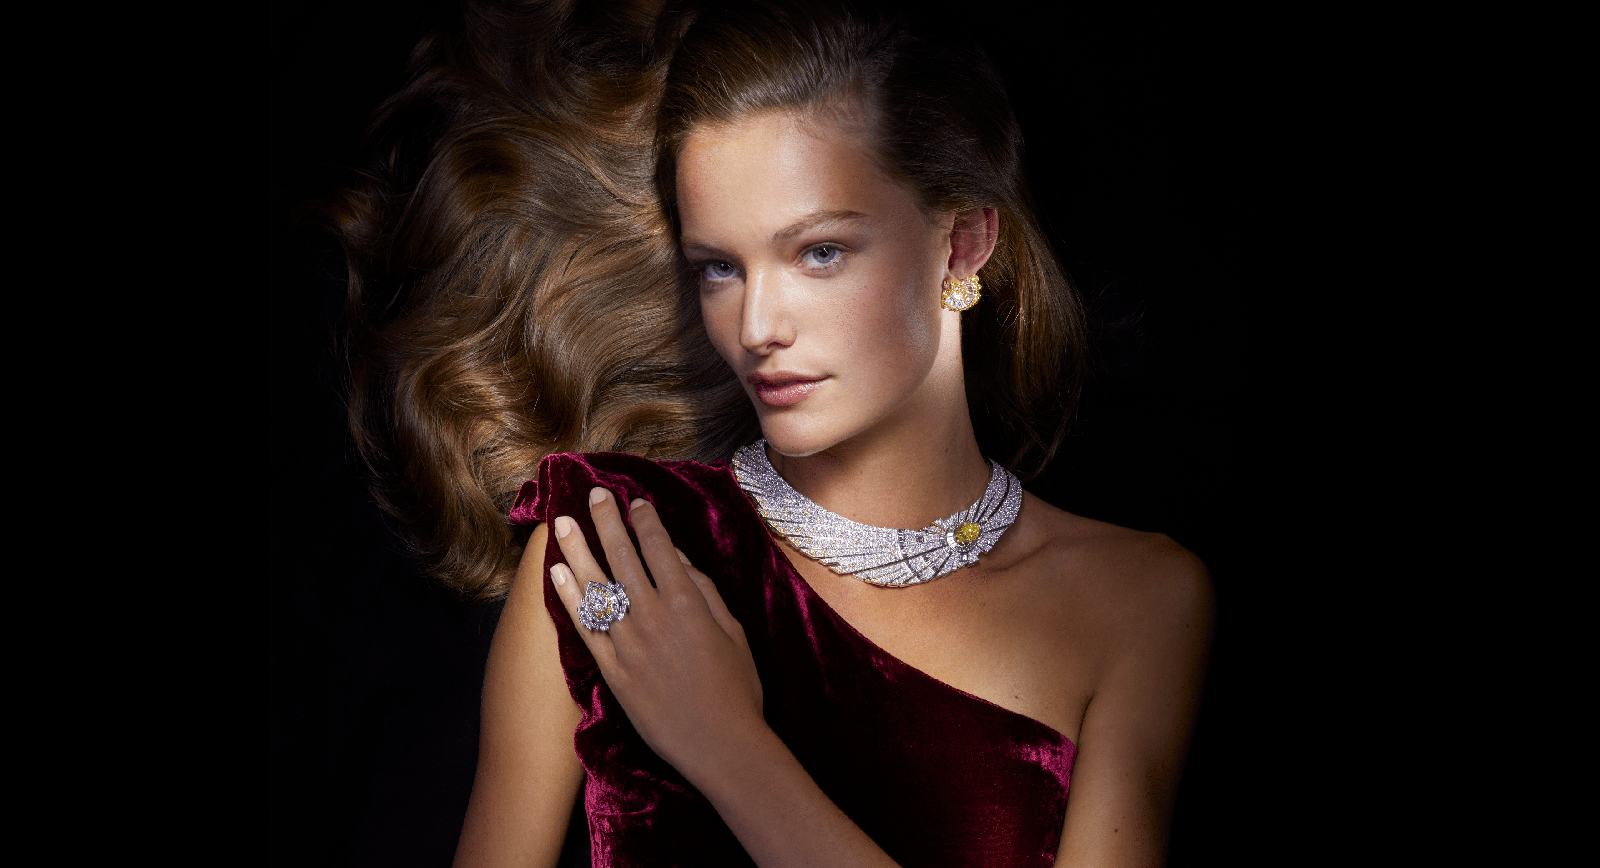 Van Cleef & Arpels Sous les Étoiles High Jewellery Collection Halley Necklace and Ring